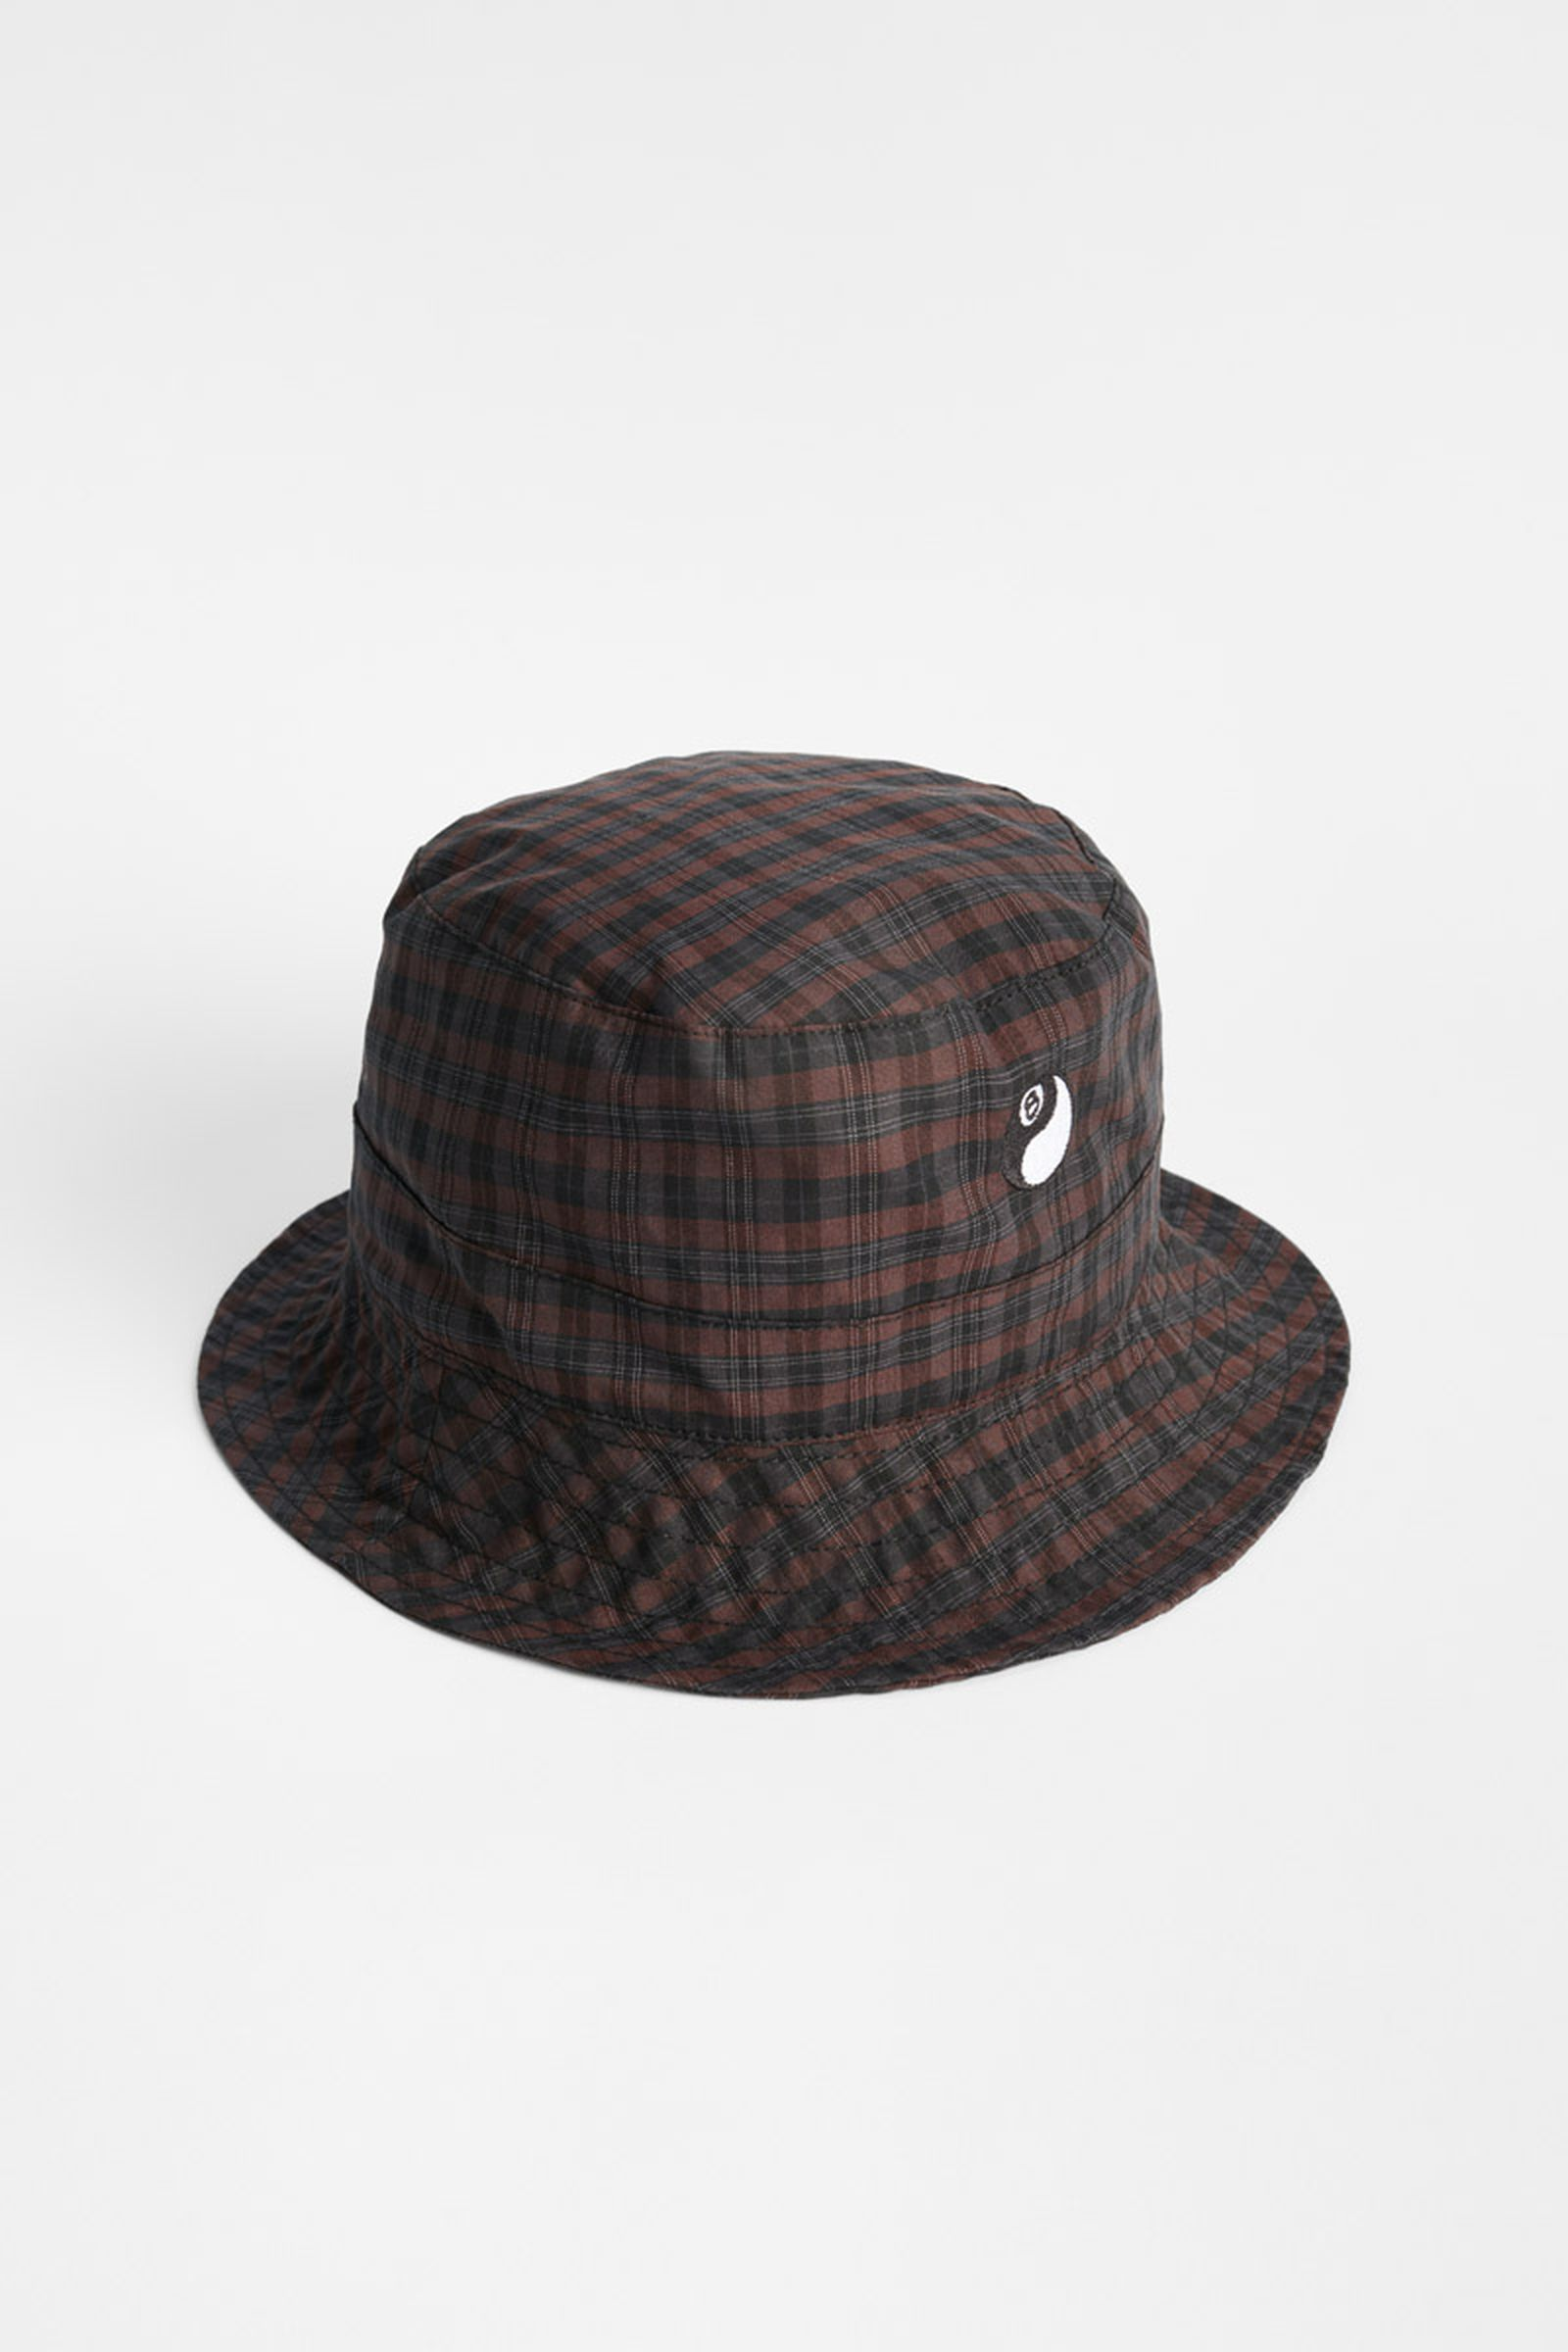 AS208BMP_BUCKET HAT_MAROON PLAID_UPRIGHT